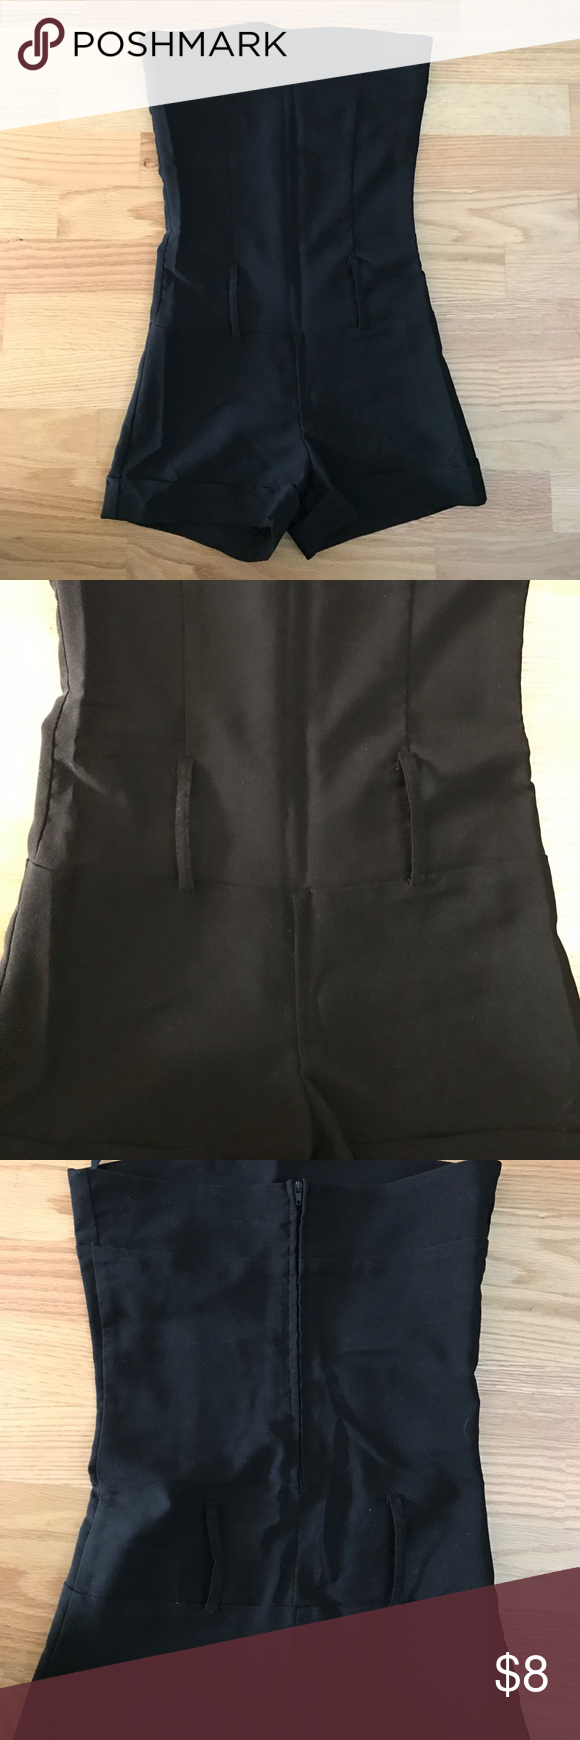 Black Romper Great condition. Black romper with belt loops (no belt included) with a zipper back. 69% polyester, 28% rayon, 3% spandex. Great for going out on the town with flats, boots, or heels! No stains, flaws, tears. Smoke free home Other